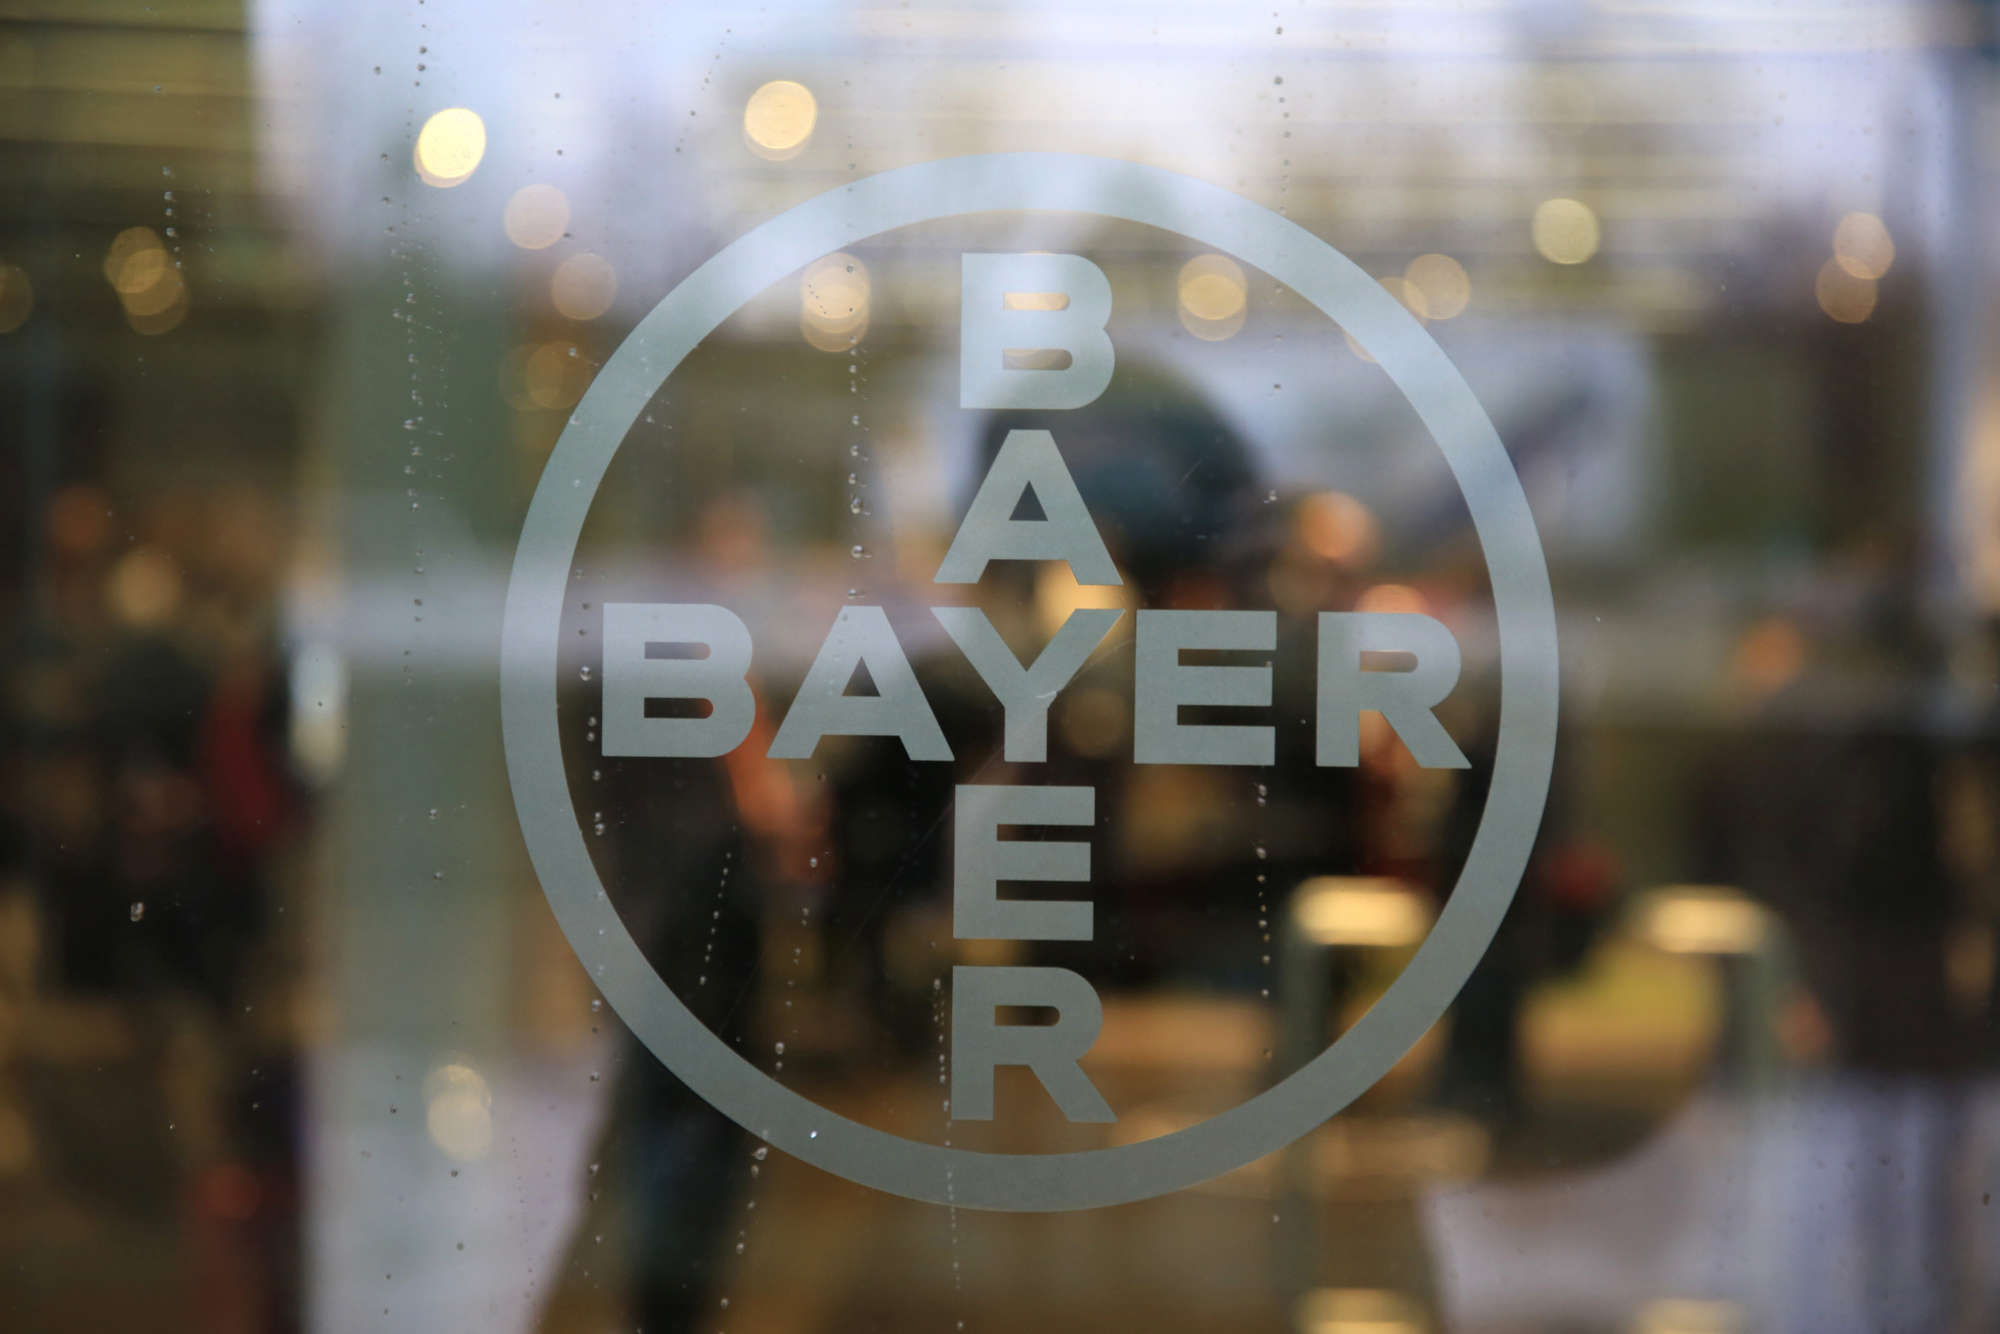 Bayer Essure Lawsuits Skyrocketed as FDA Pushed Stronger